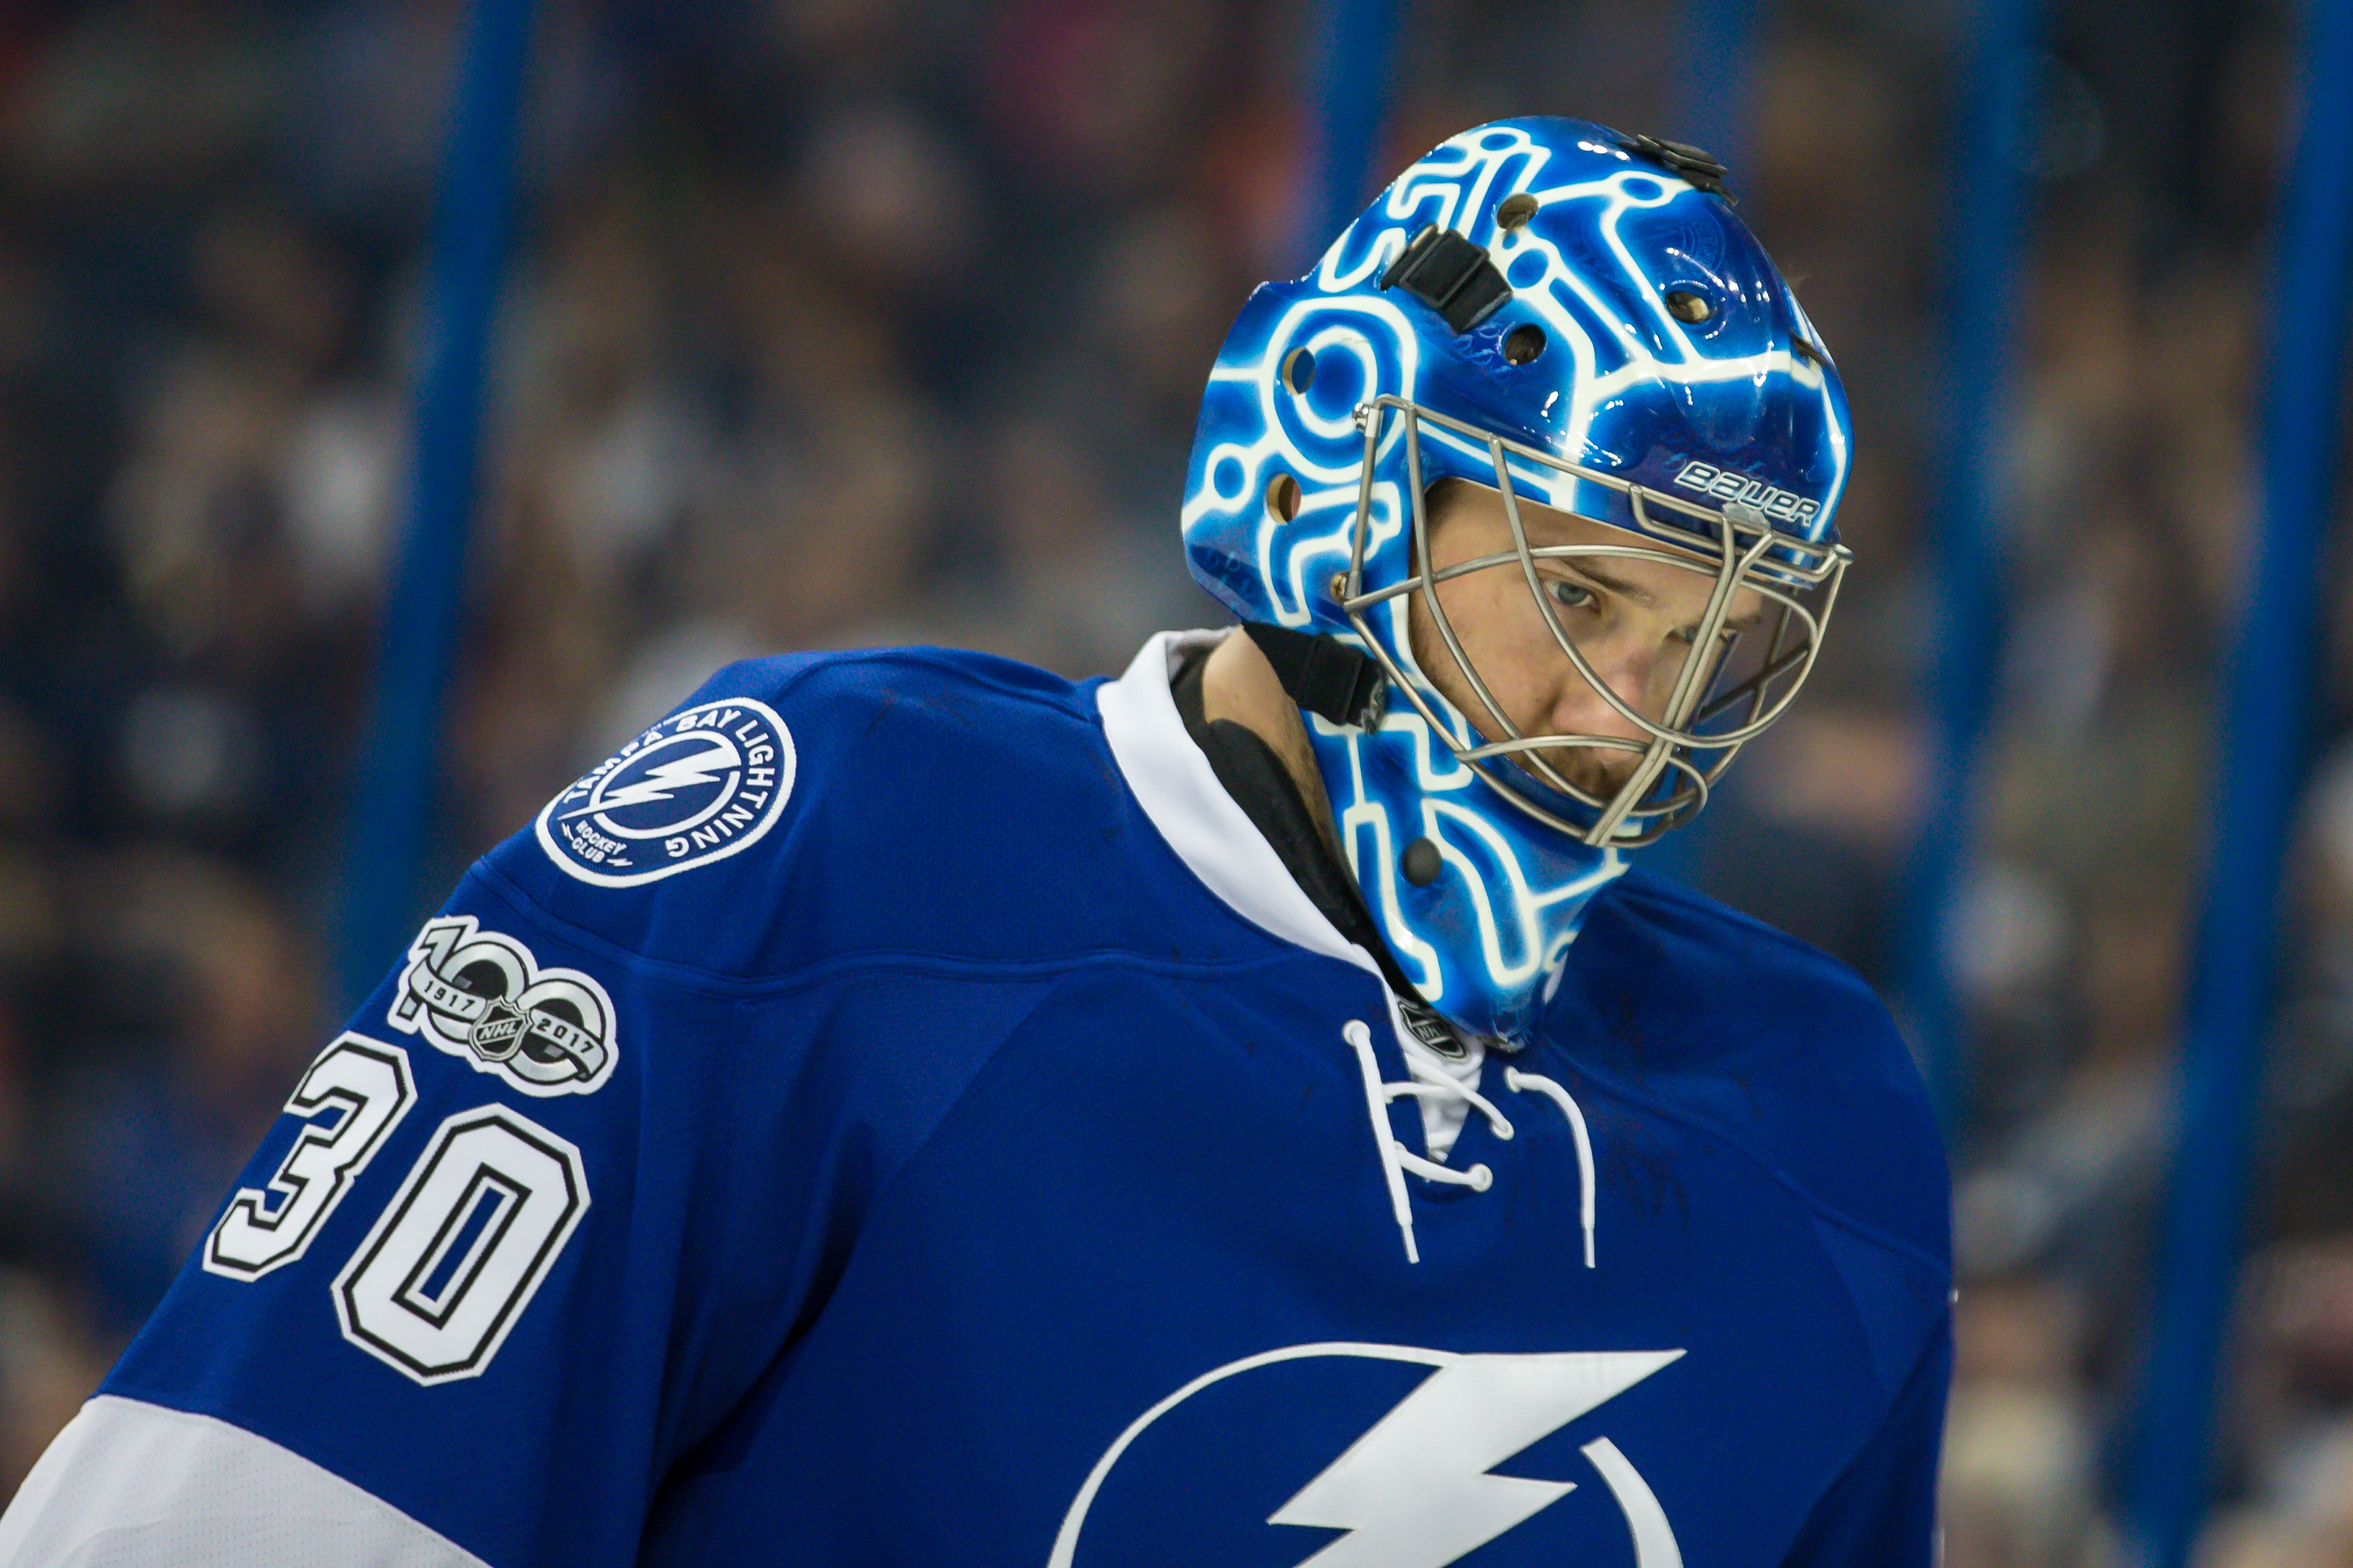 Bishop's return helped the Lightning break a streak./TRAVIS PENDERGRASS